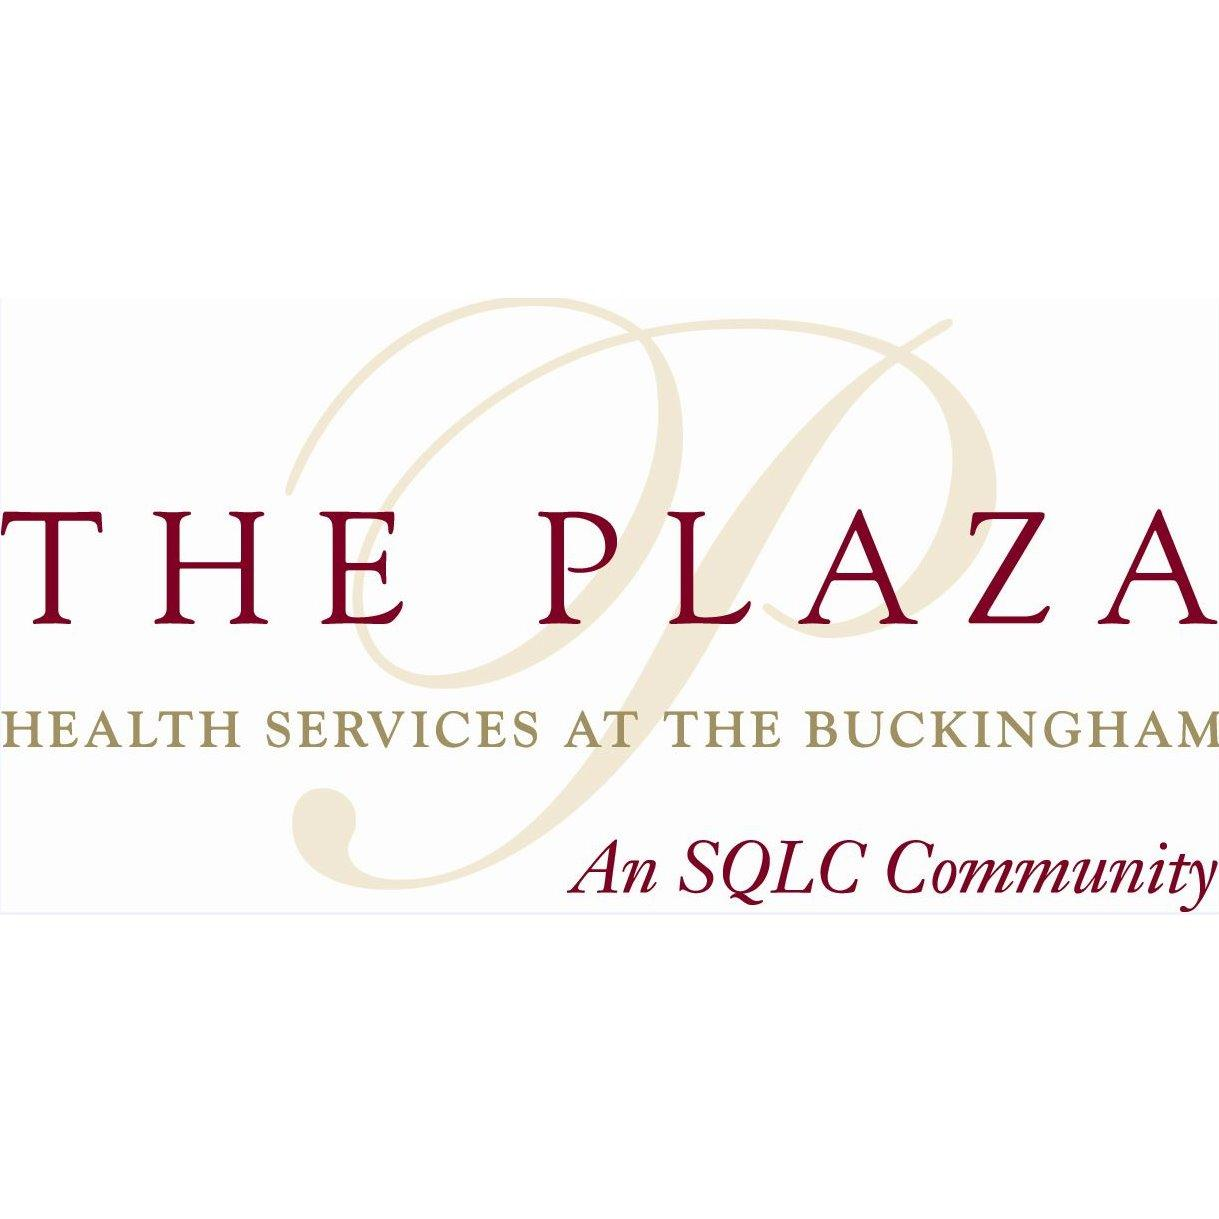 The Plaza at the Buckingham